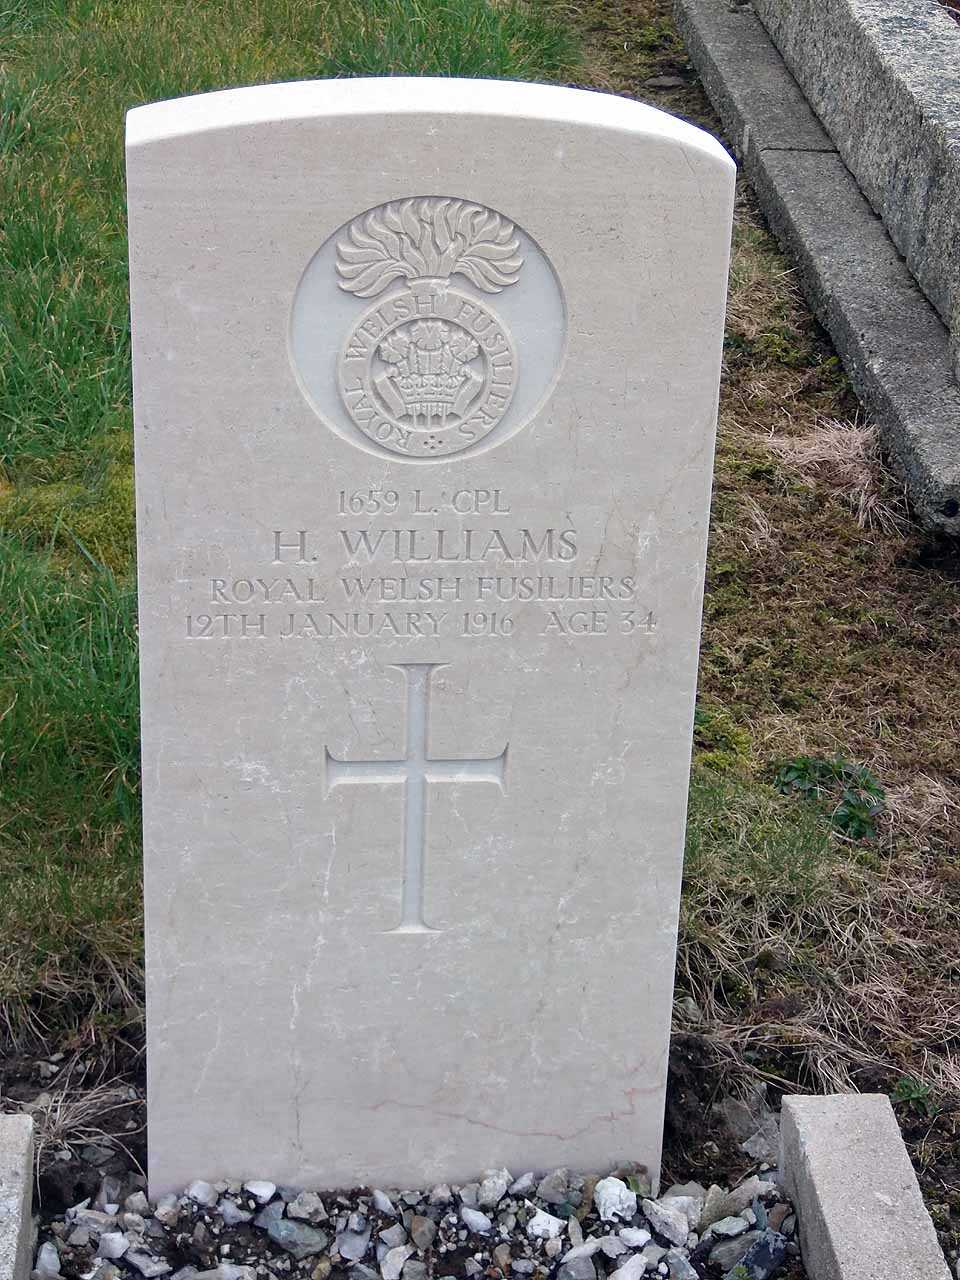 Hugh Williams Royal Welsh Fusiliers died in 1916 aged 34